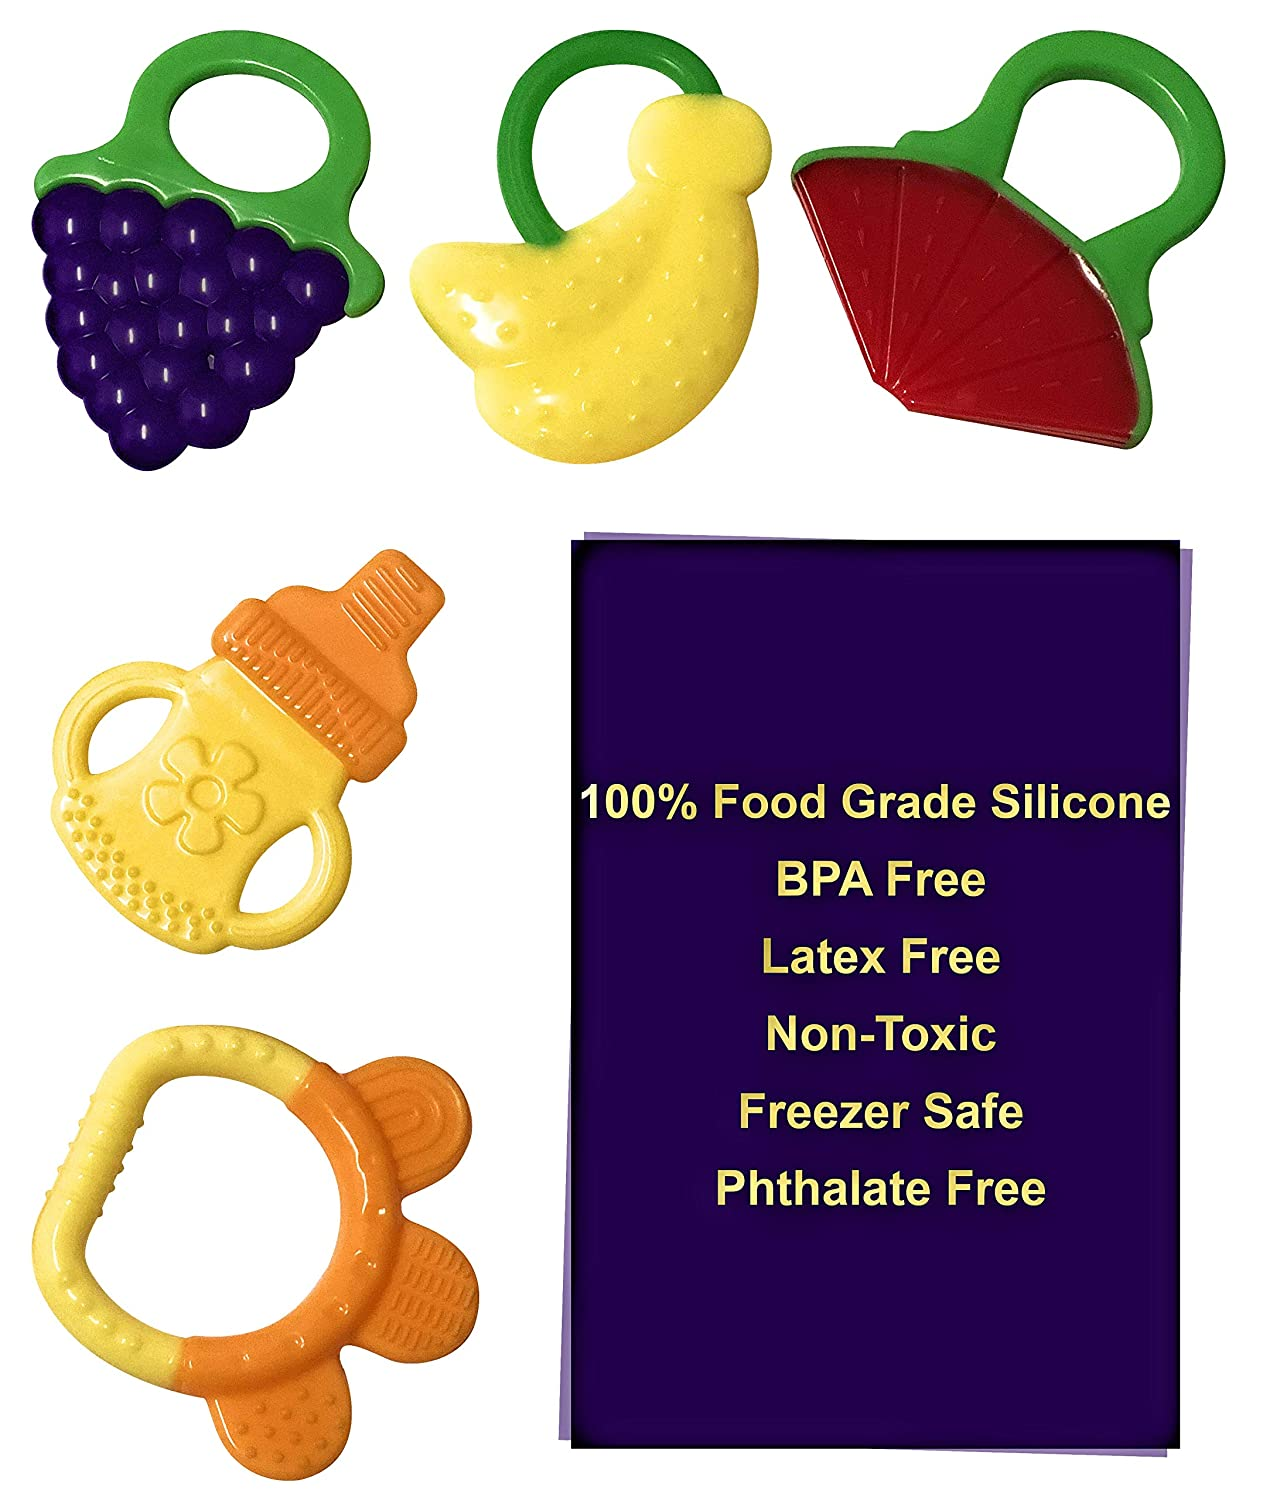 SoMag Silicone Baby Teethers BPA Free 5 Pack